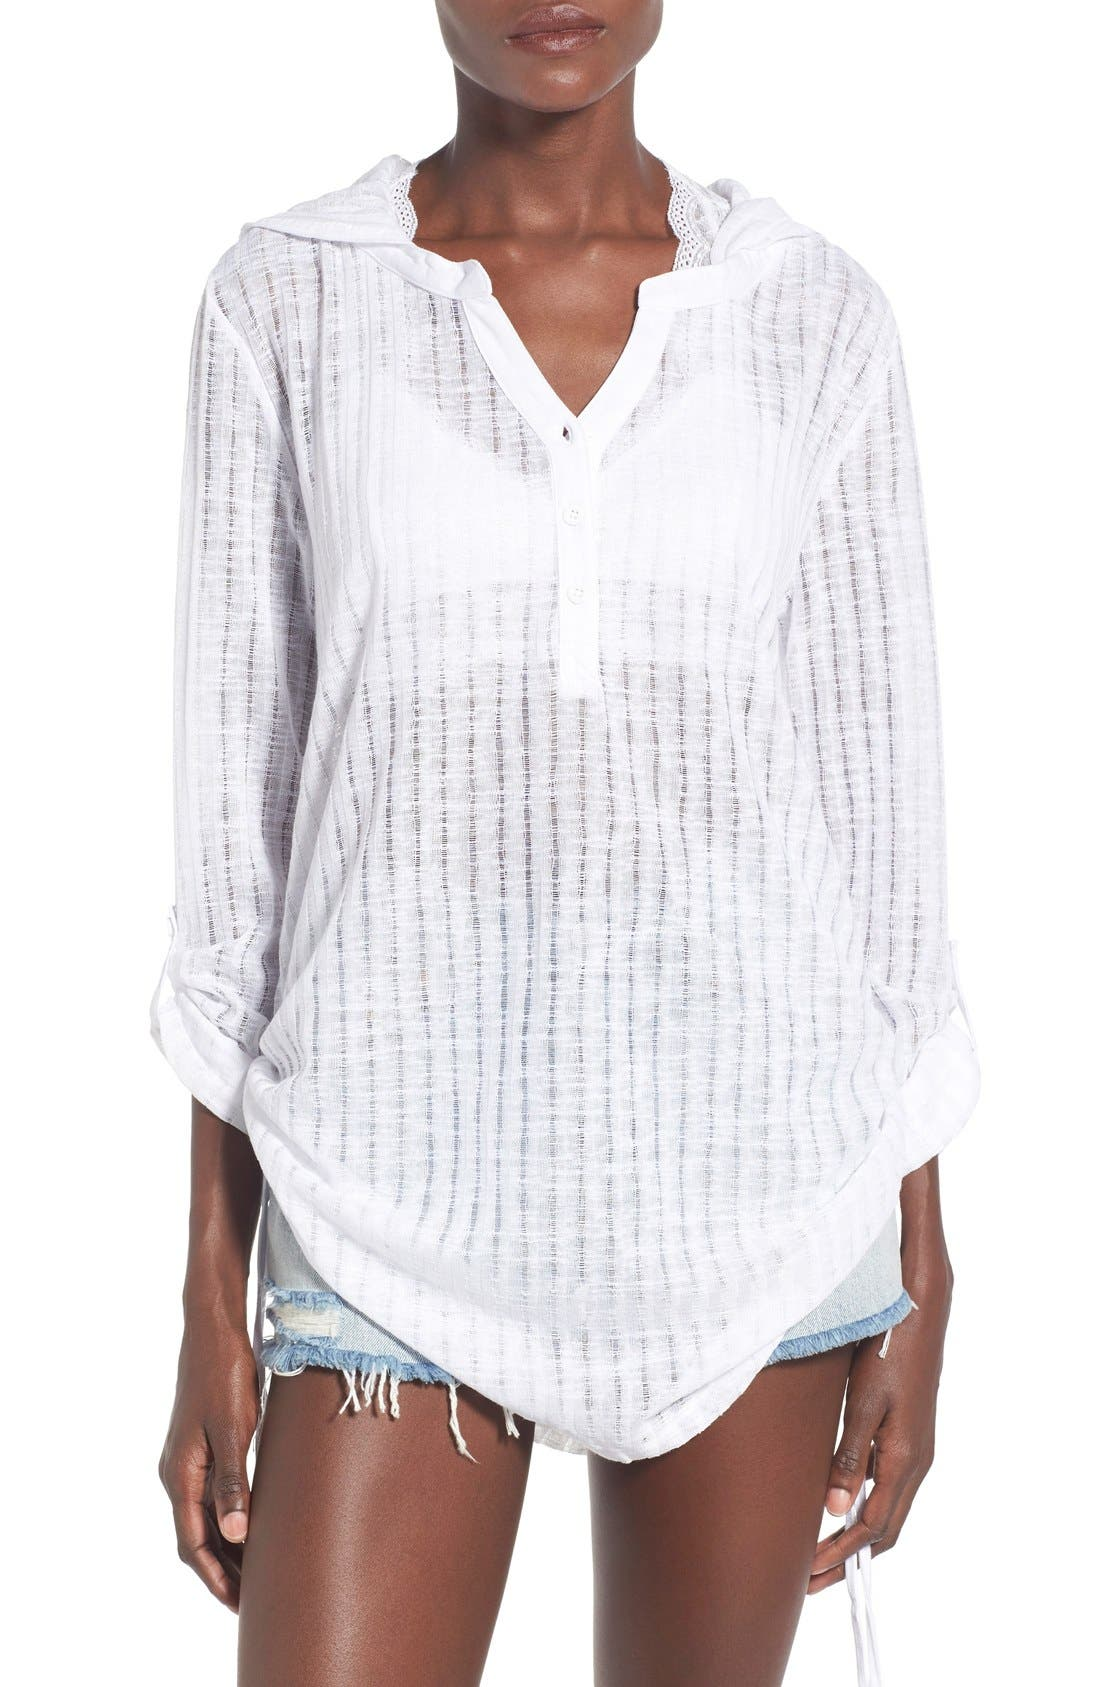 Lovechild Hooded Cover-Up Top,                             Main thumbnail 1, color,                             White